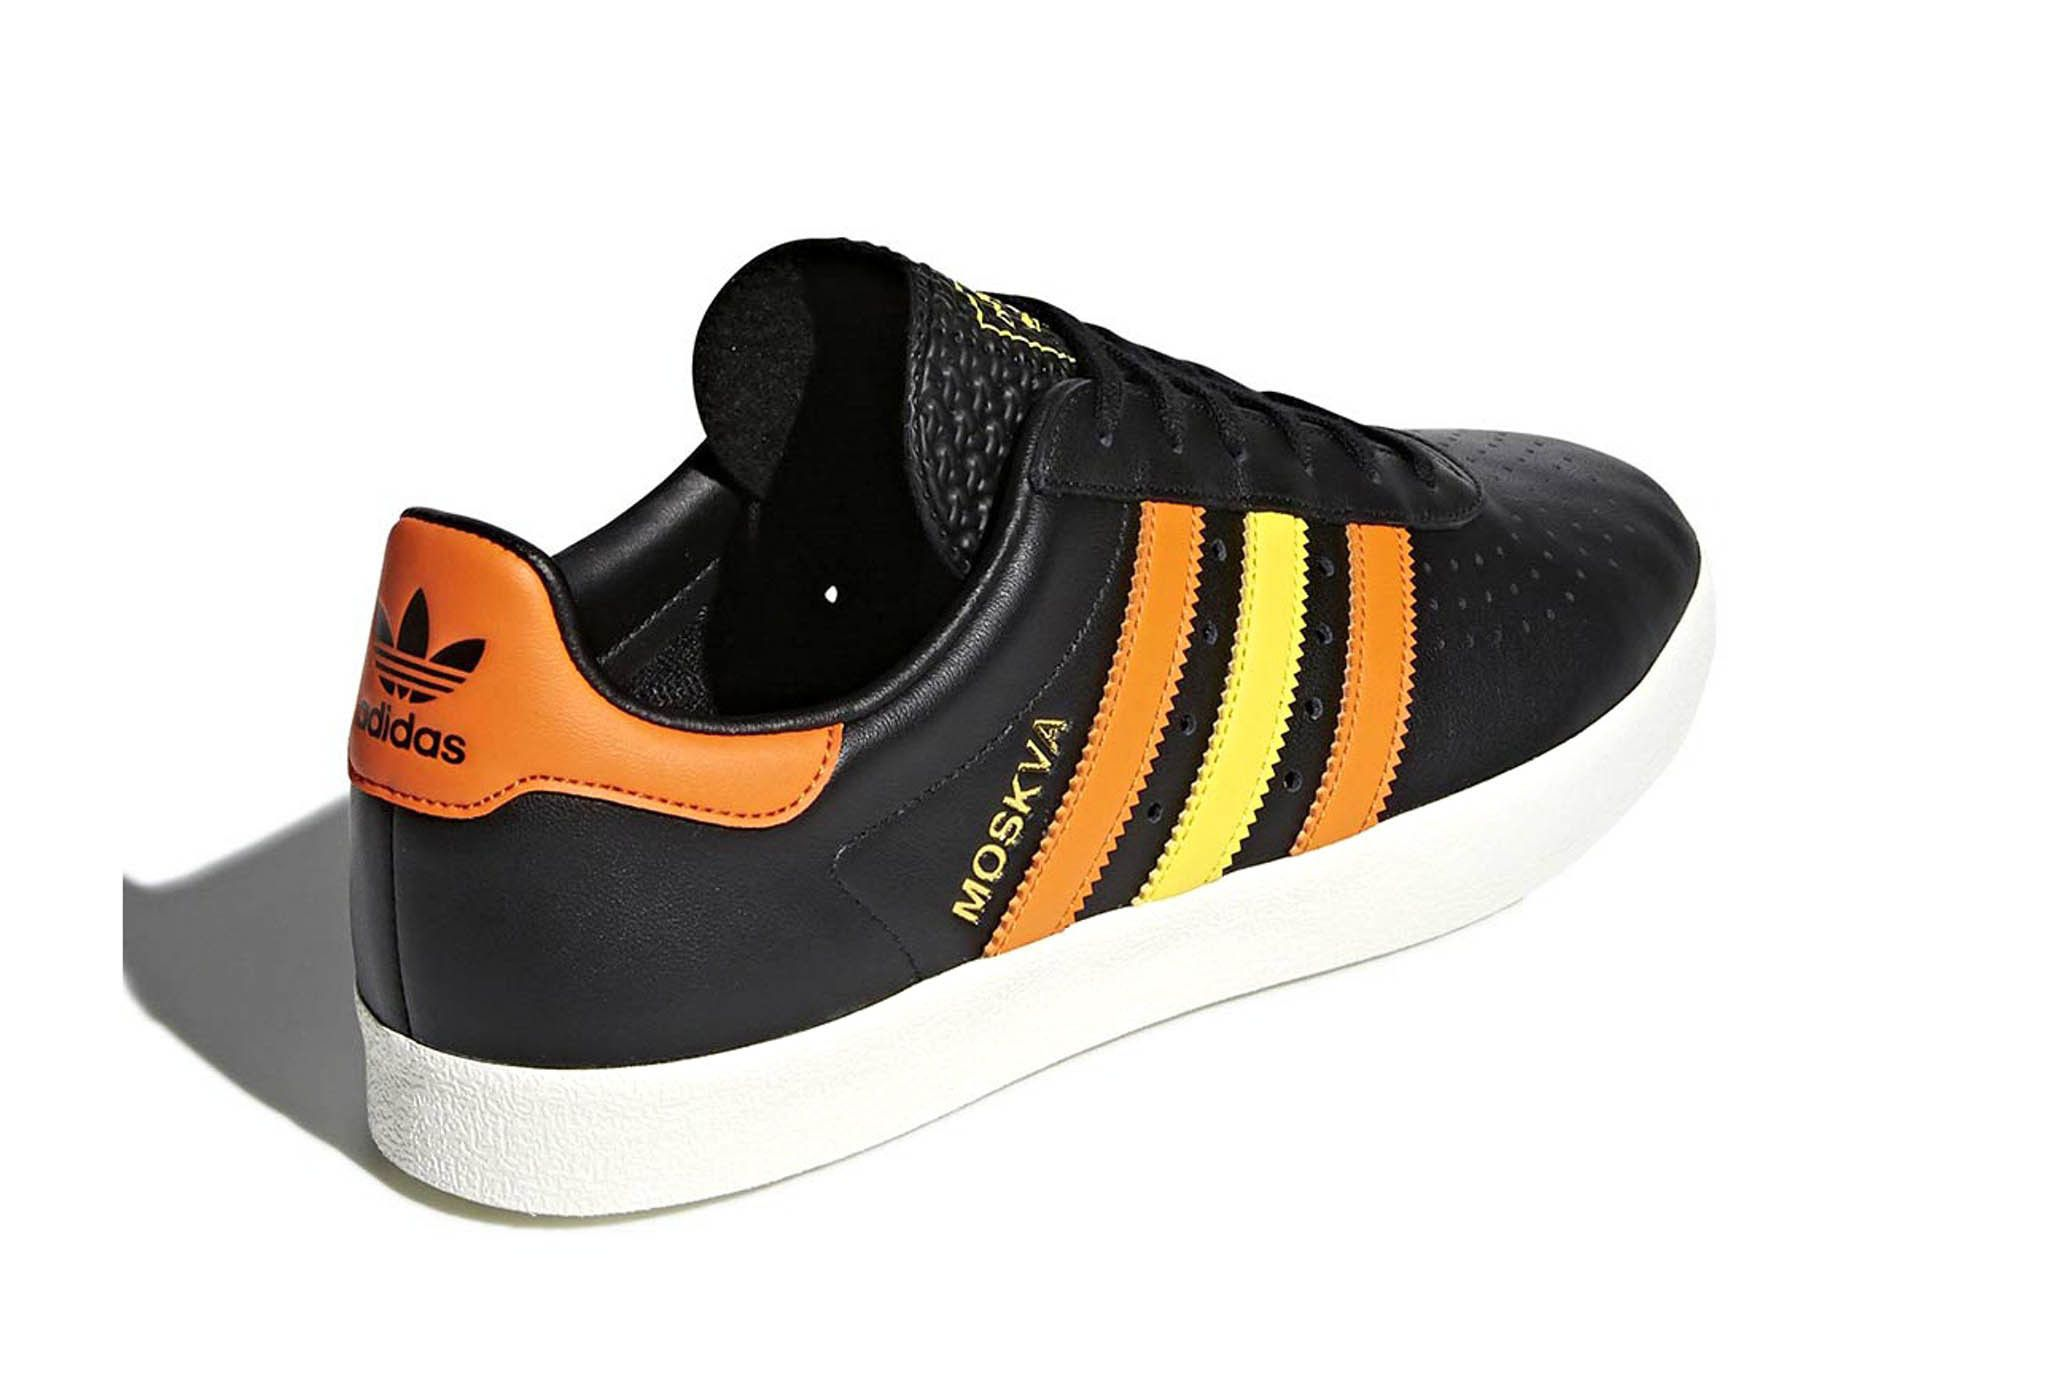 Adidas 350 Moscow Black White Leather Release 8 Sneaker Freaker